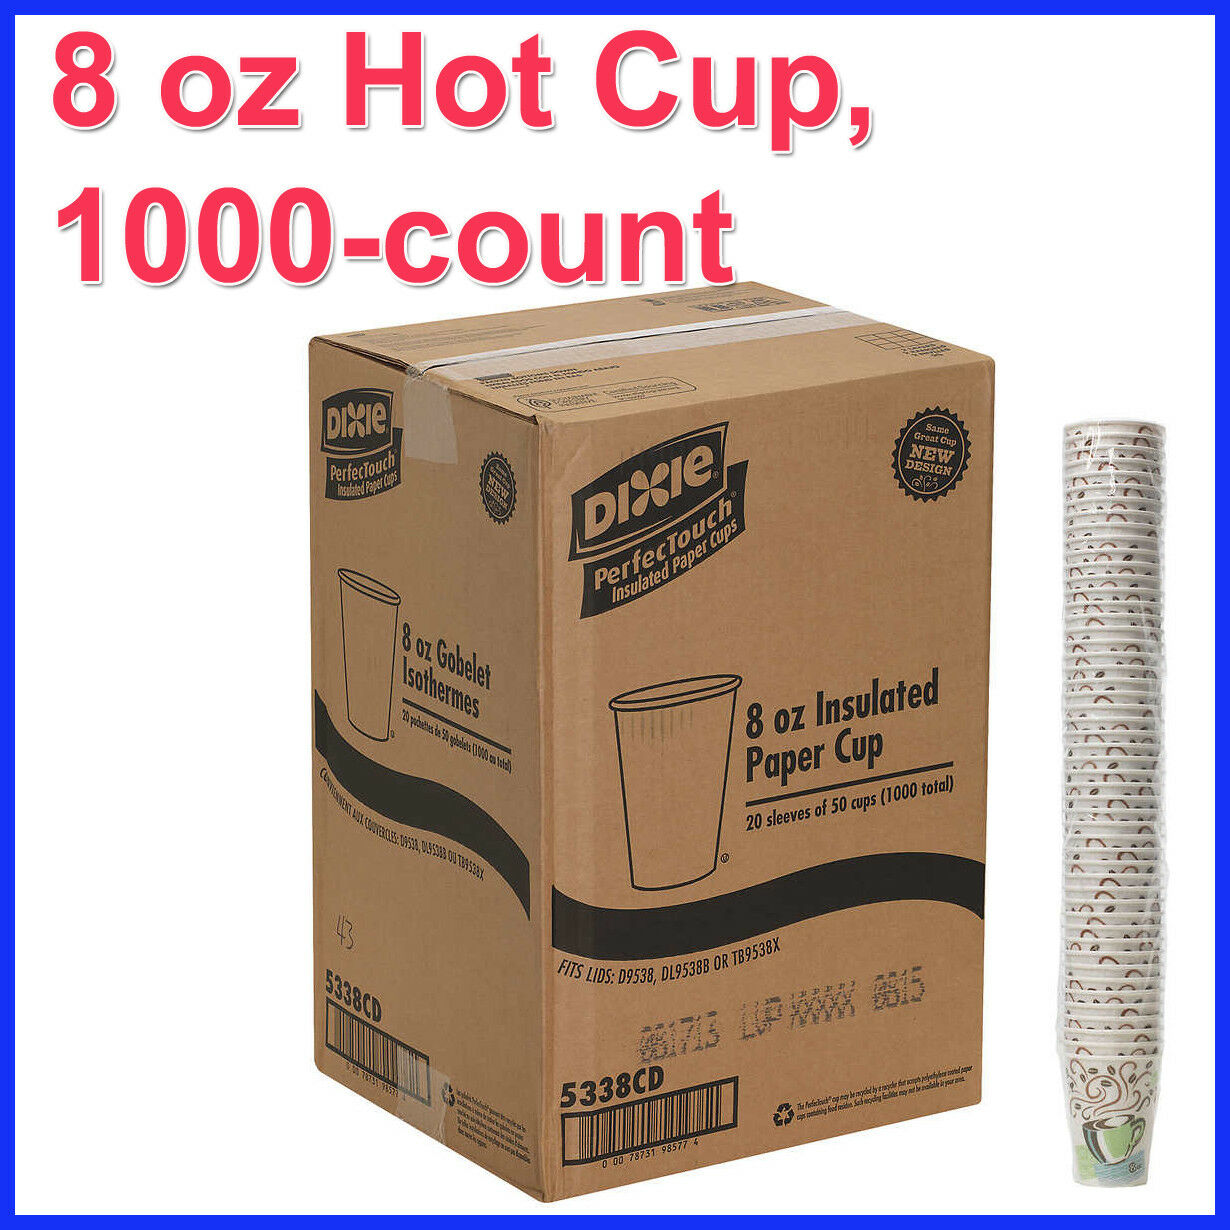 Dixie PerfecTouch 8 oz Hot Cup, 1000-count